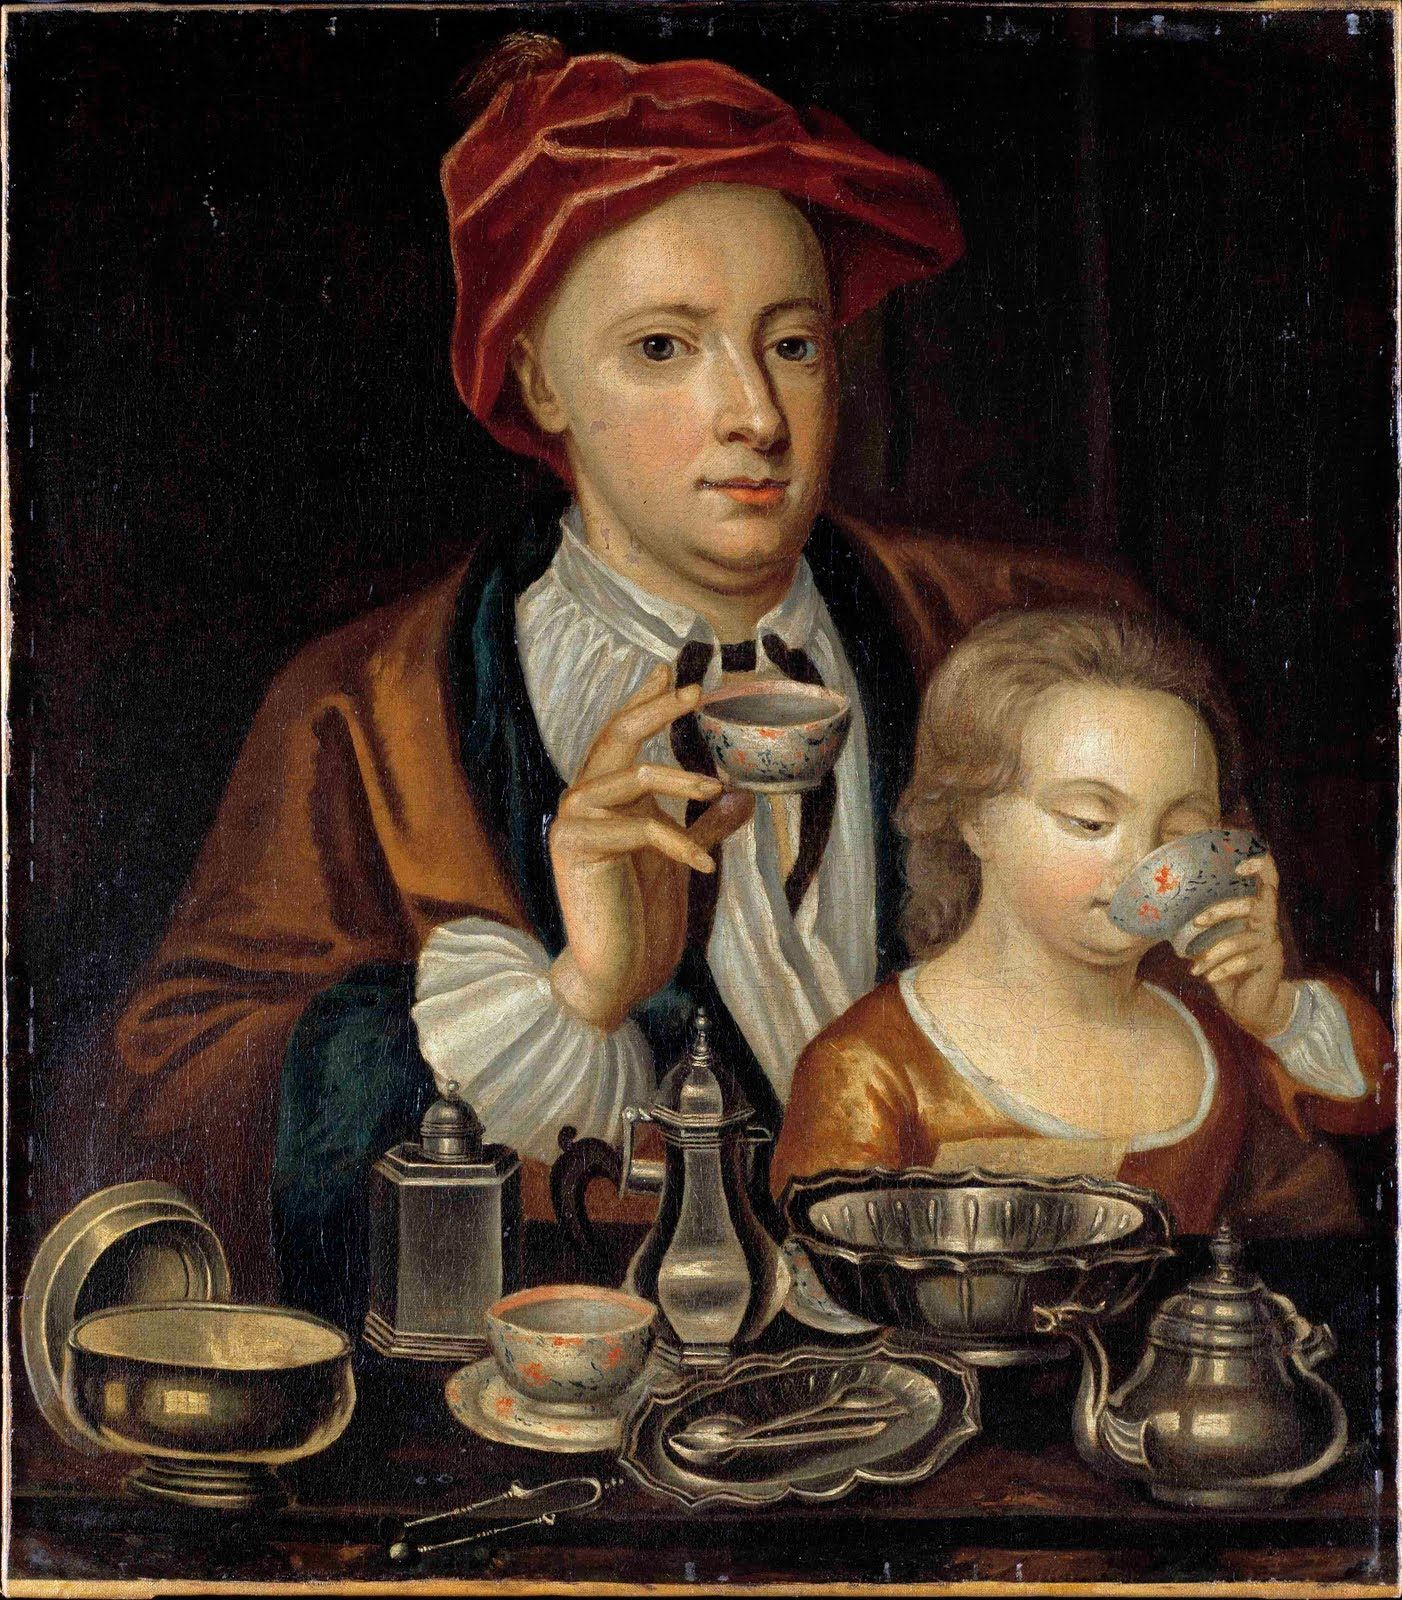 Artist unknown (possibly Richard Collins) - Man and Child Drinking Tea, 1720 ca. Large HD